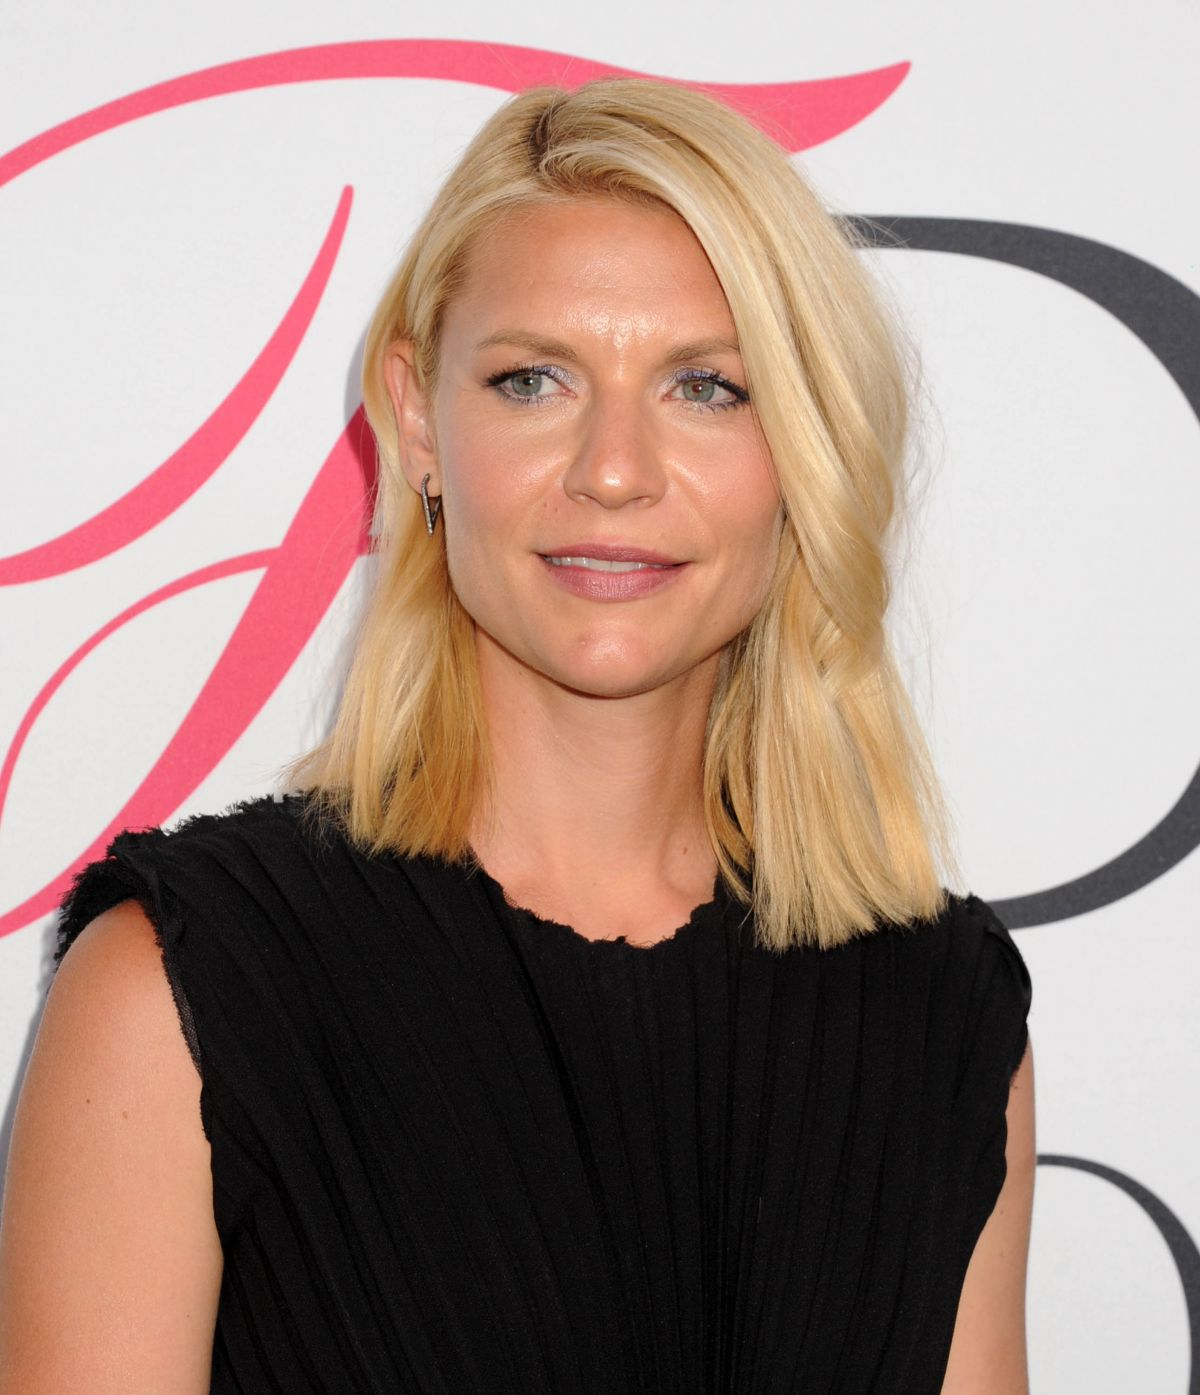 CLAIRE DANES at CFDA Fashion Awards in New York 06/06/2016